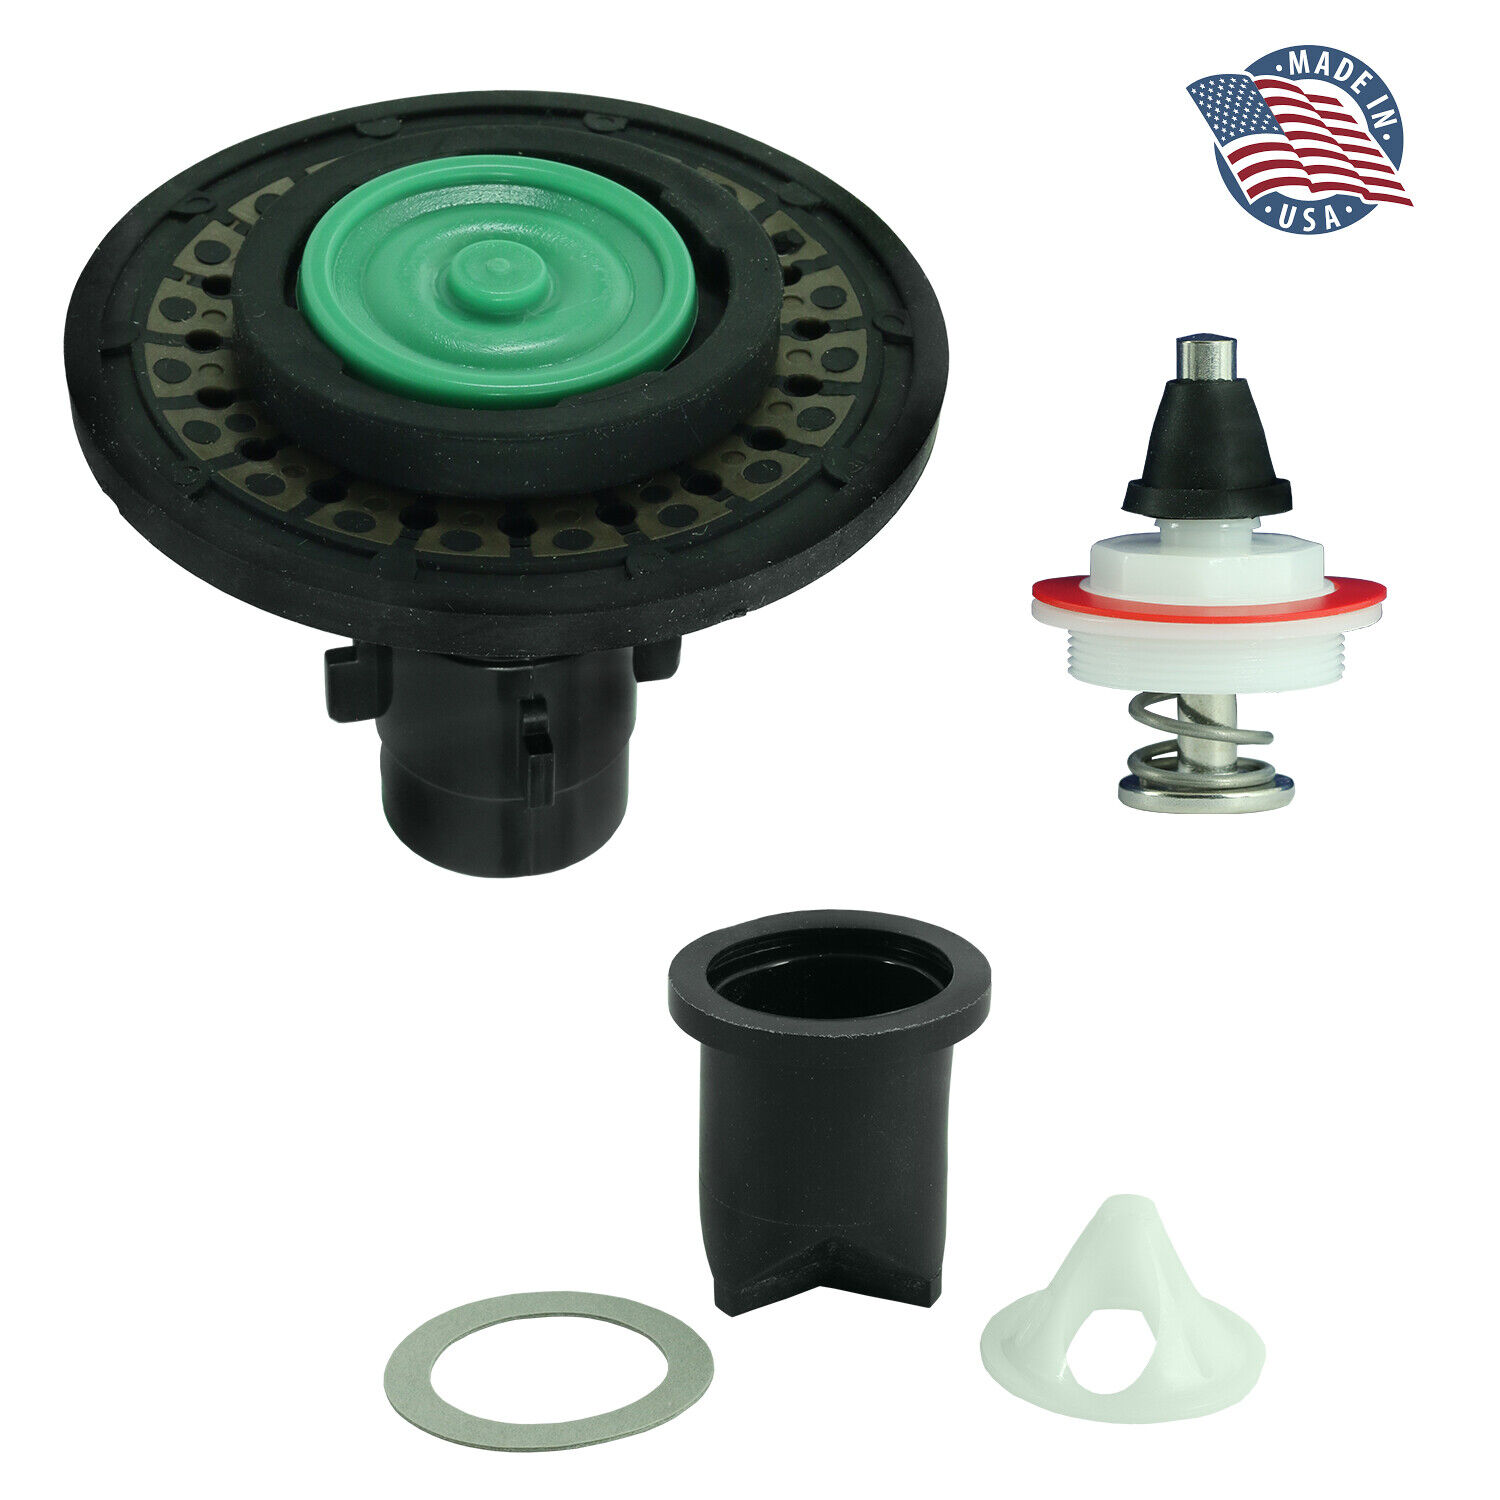 FlushLine Full Assembly Replacement Kit for Sloan 3301041 A-41-A 1.6 GPF Drop-In Home & Garden